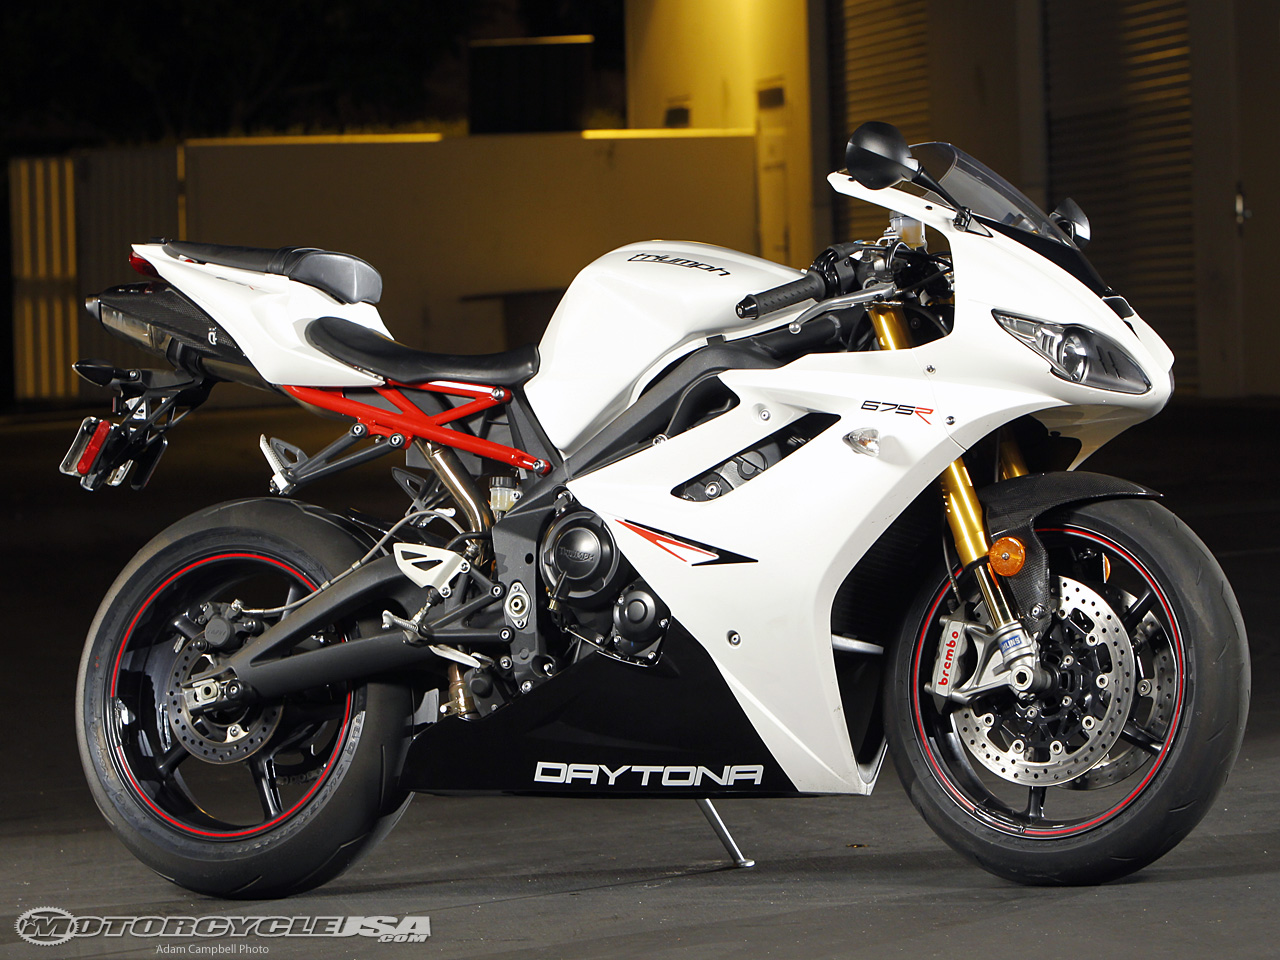 2011 Triumph Daytona 675 Pics Specs And Information